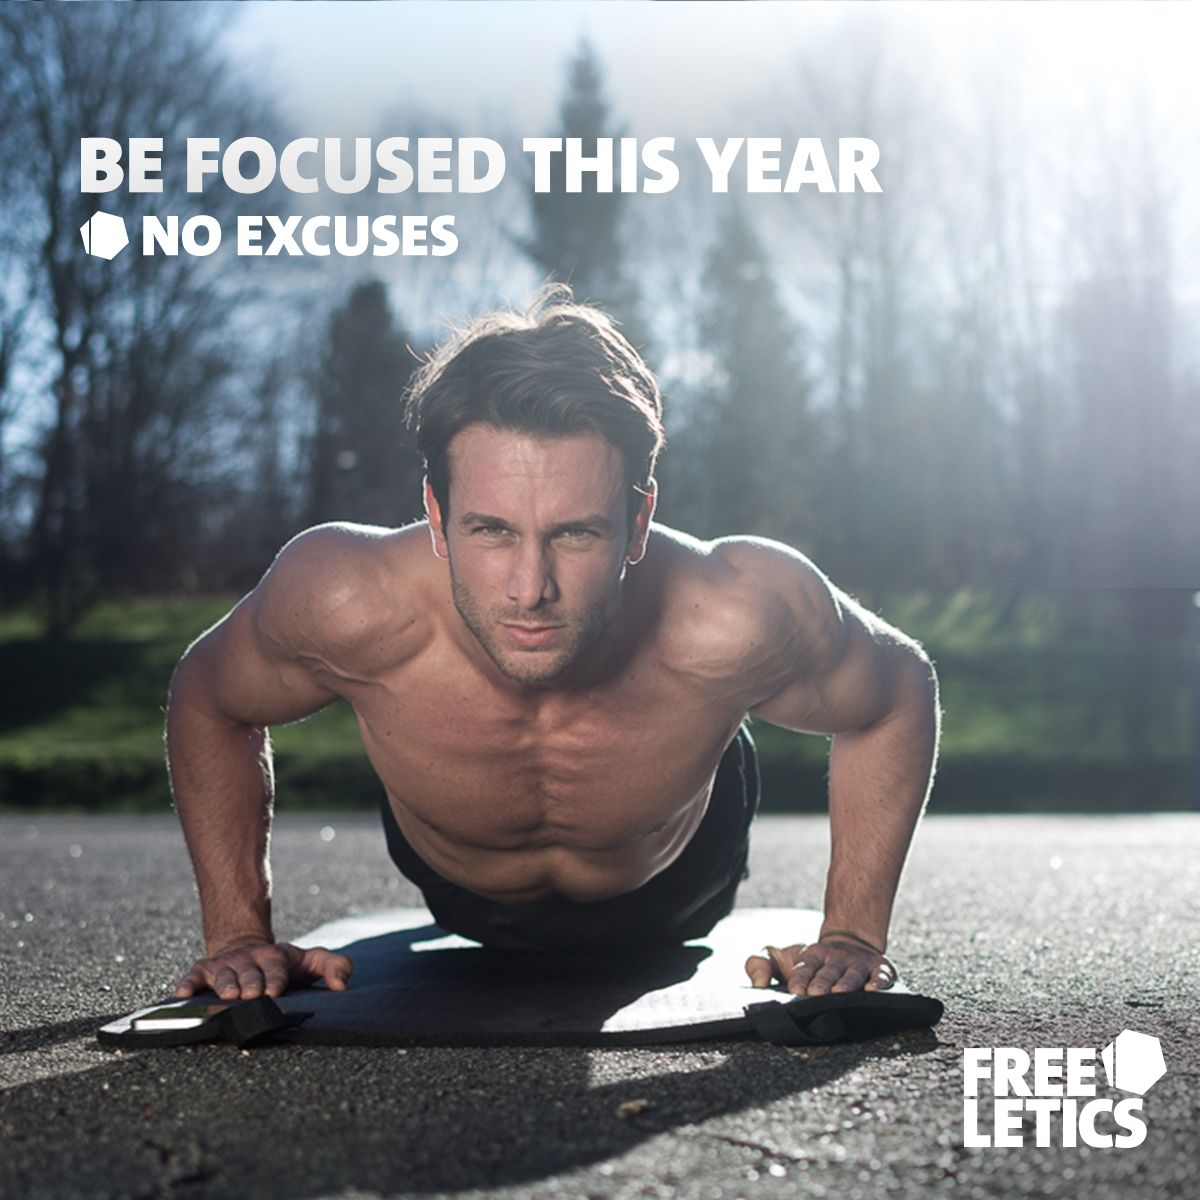 This year we will not accept excuses. Neither should you. Focus at all times. Not only during your workout, but in every situation in life. It is essential to prepare yourself not only physically, but also mentally. #noexcuses www.frltcs.com/Athlete